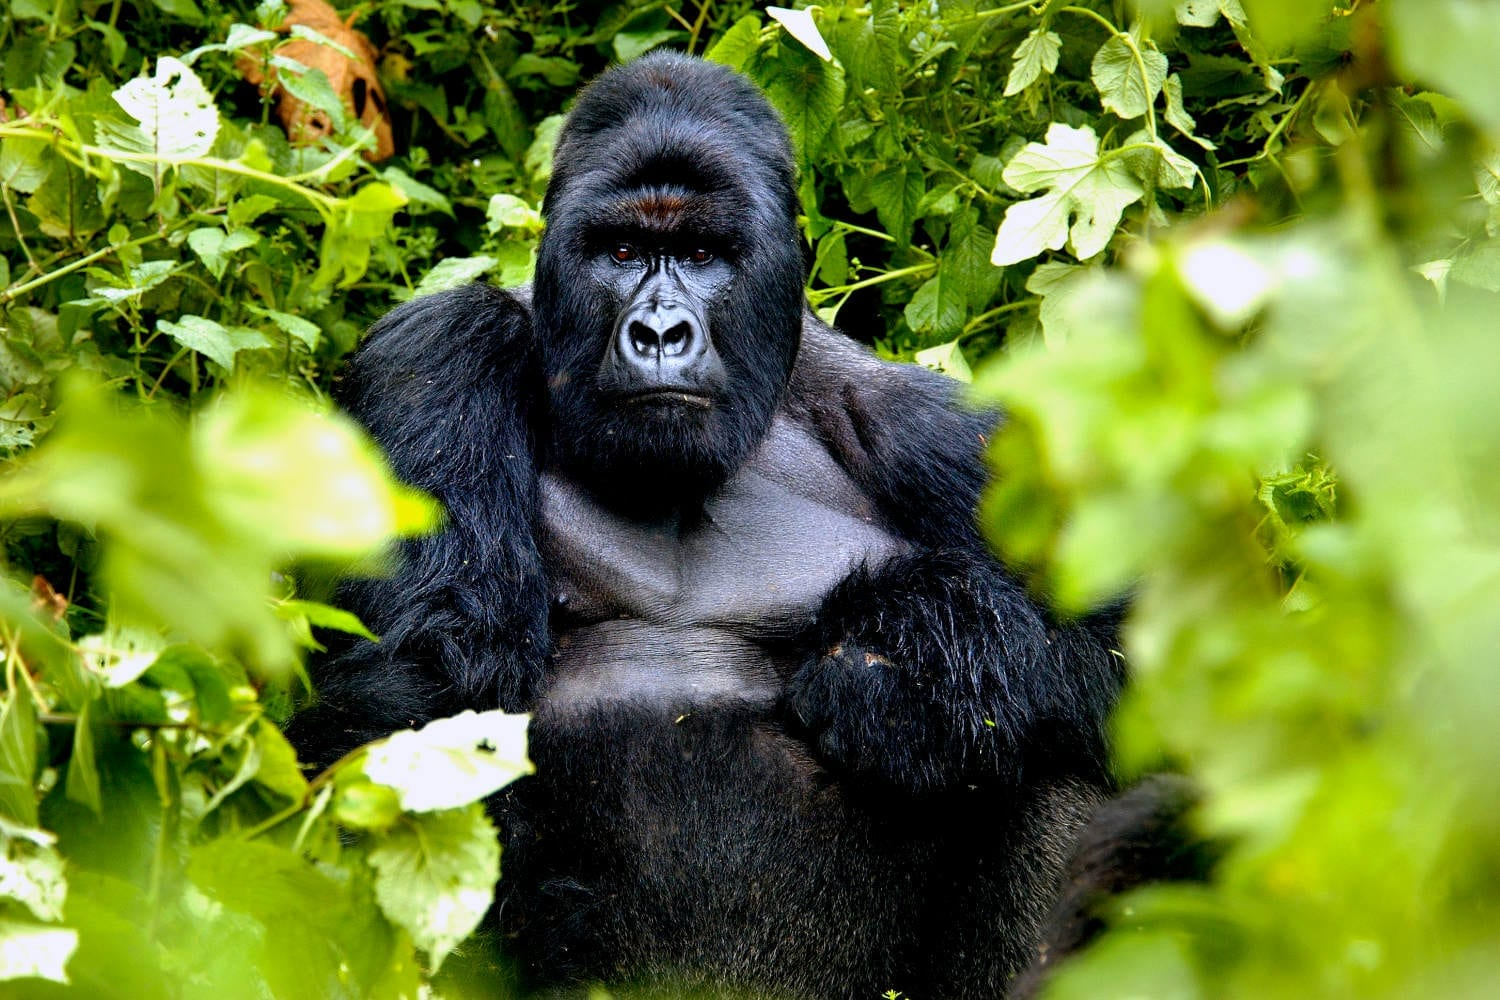 Gorilla in the jungles of Congo